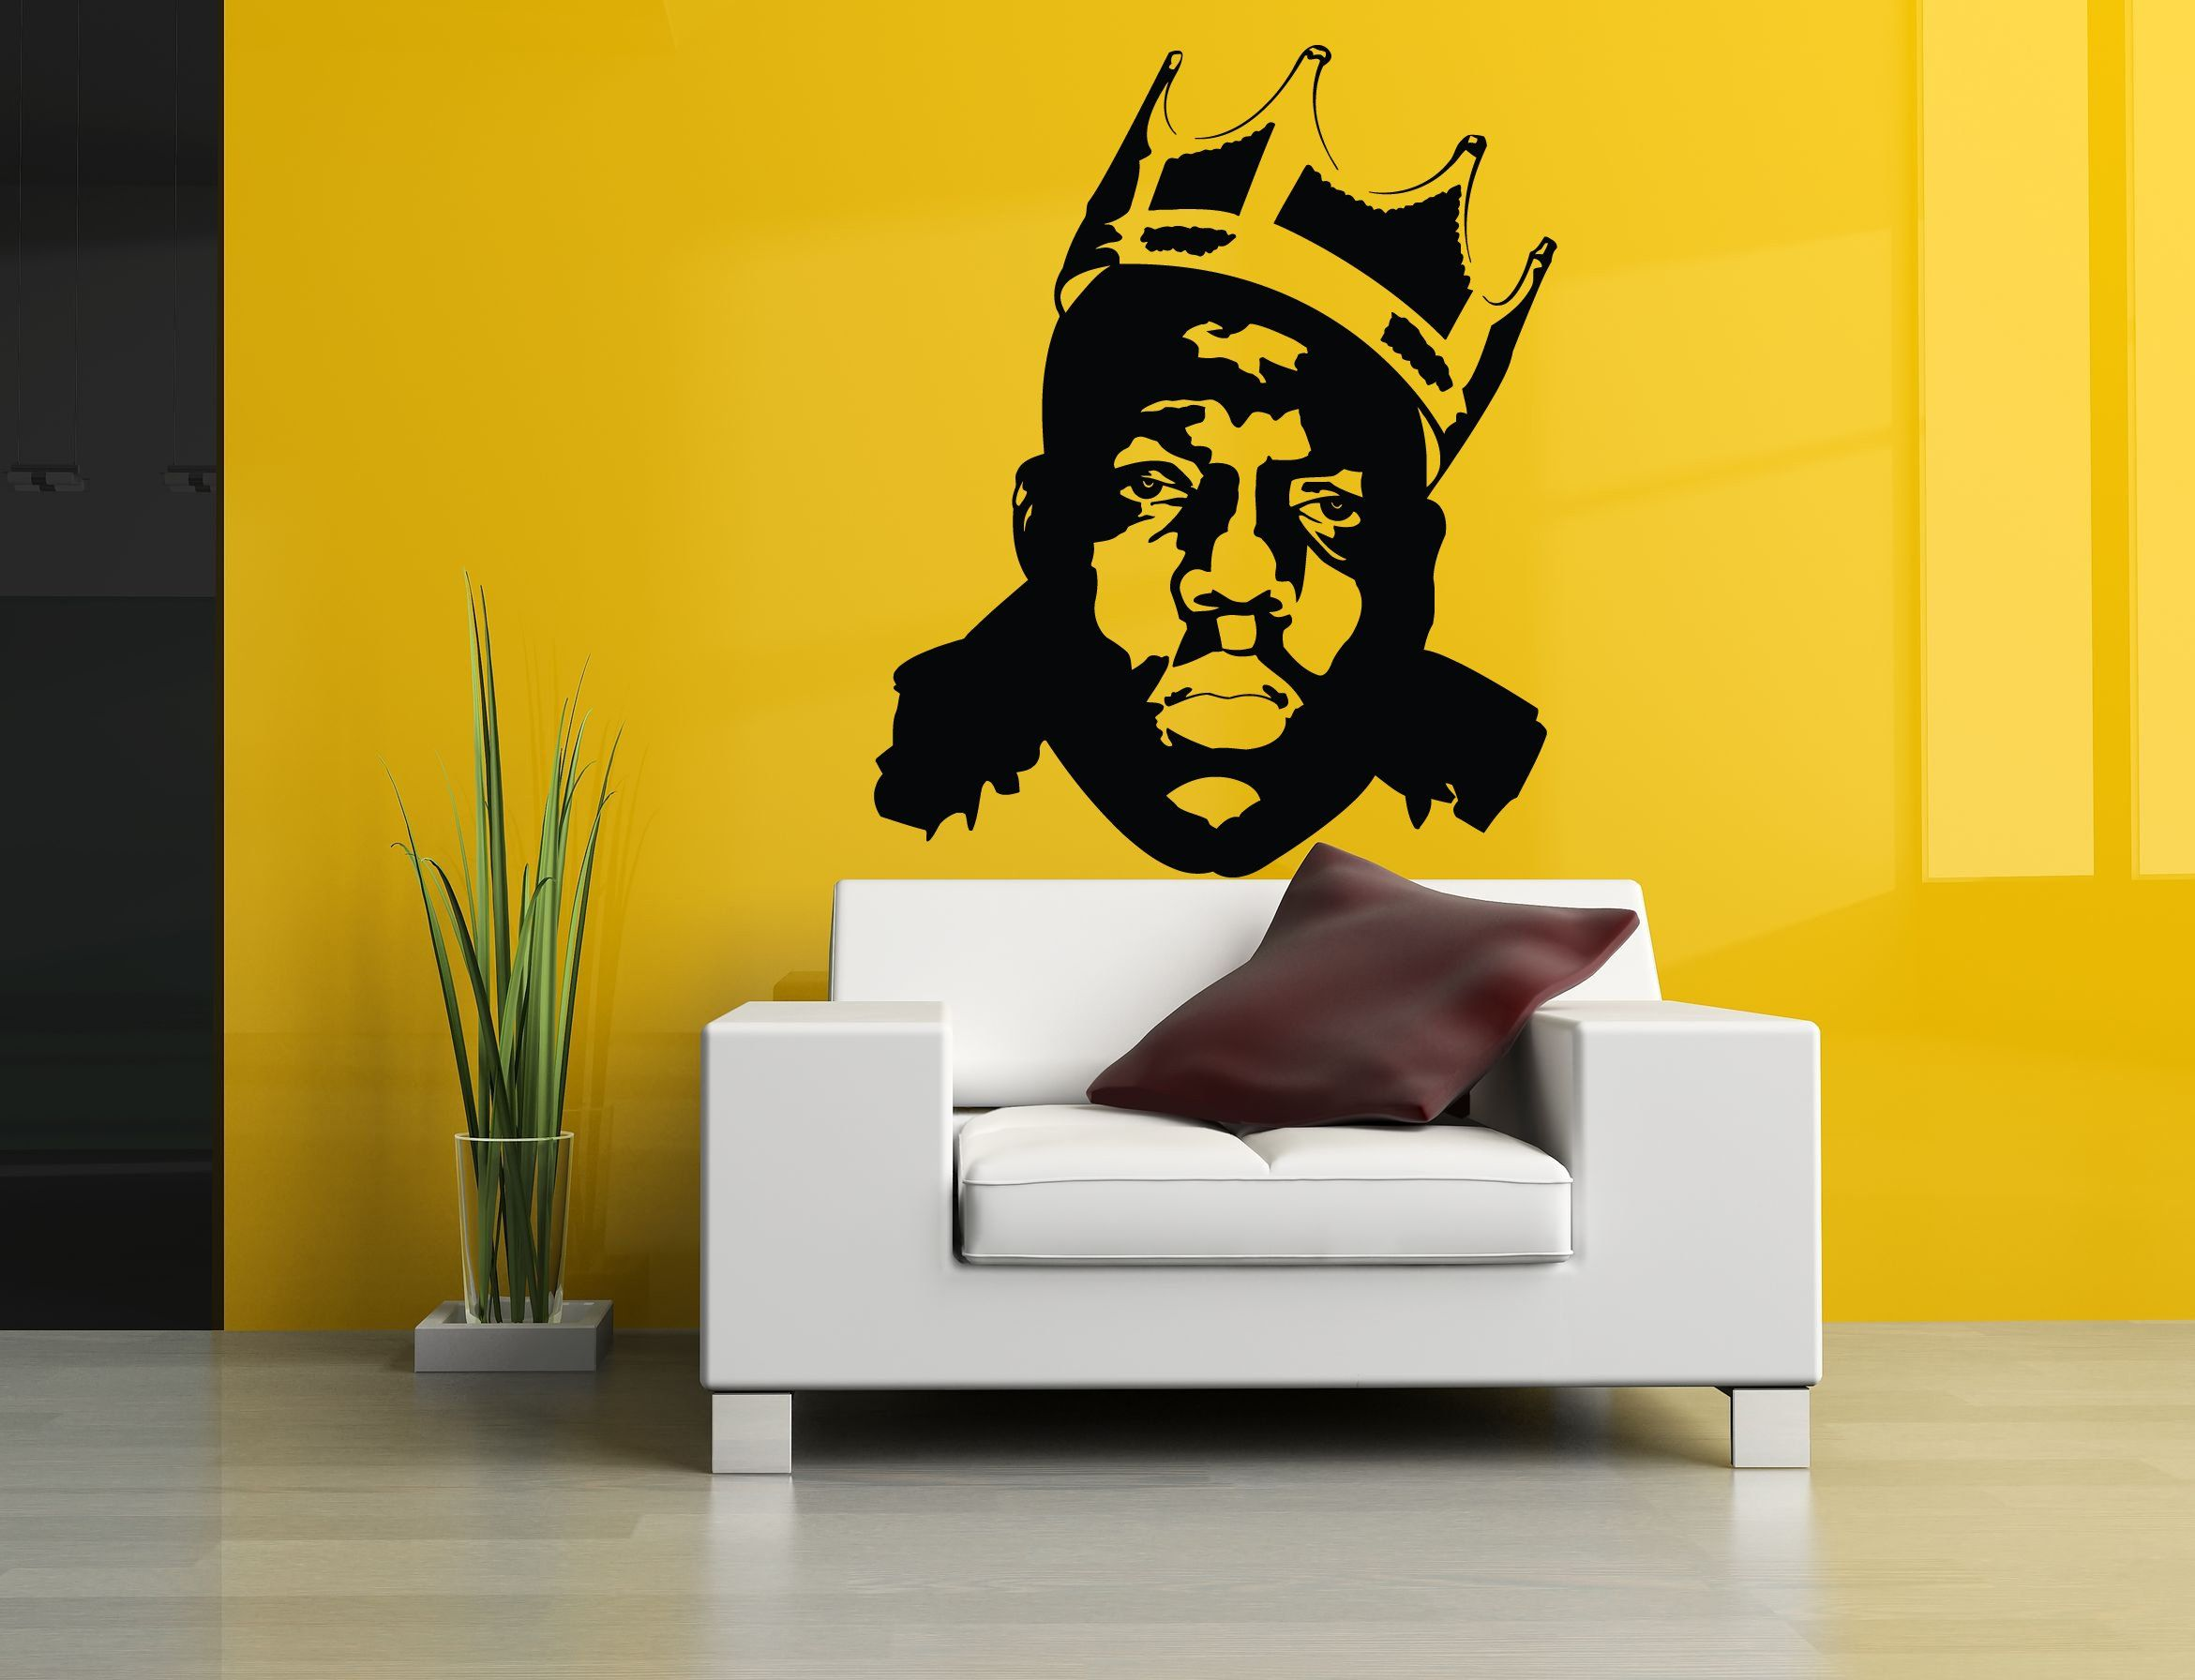 Wall Room Decor Art Vinyl Sticker Mural Decal Rap Hip Hop Star Big ...